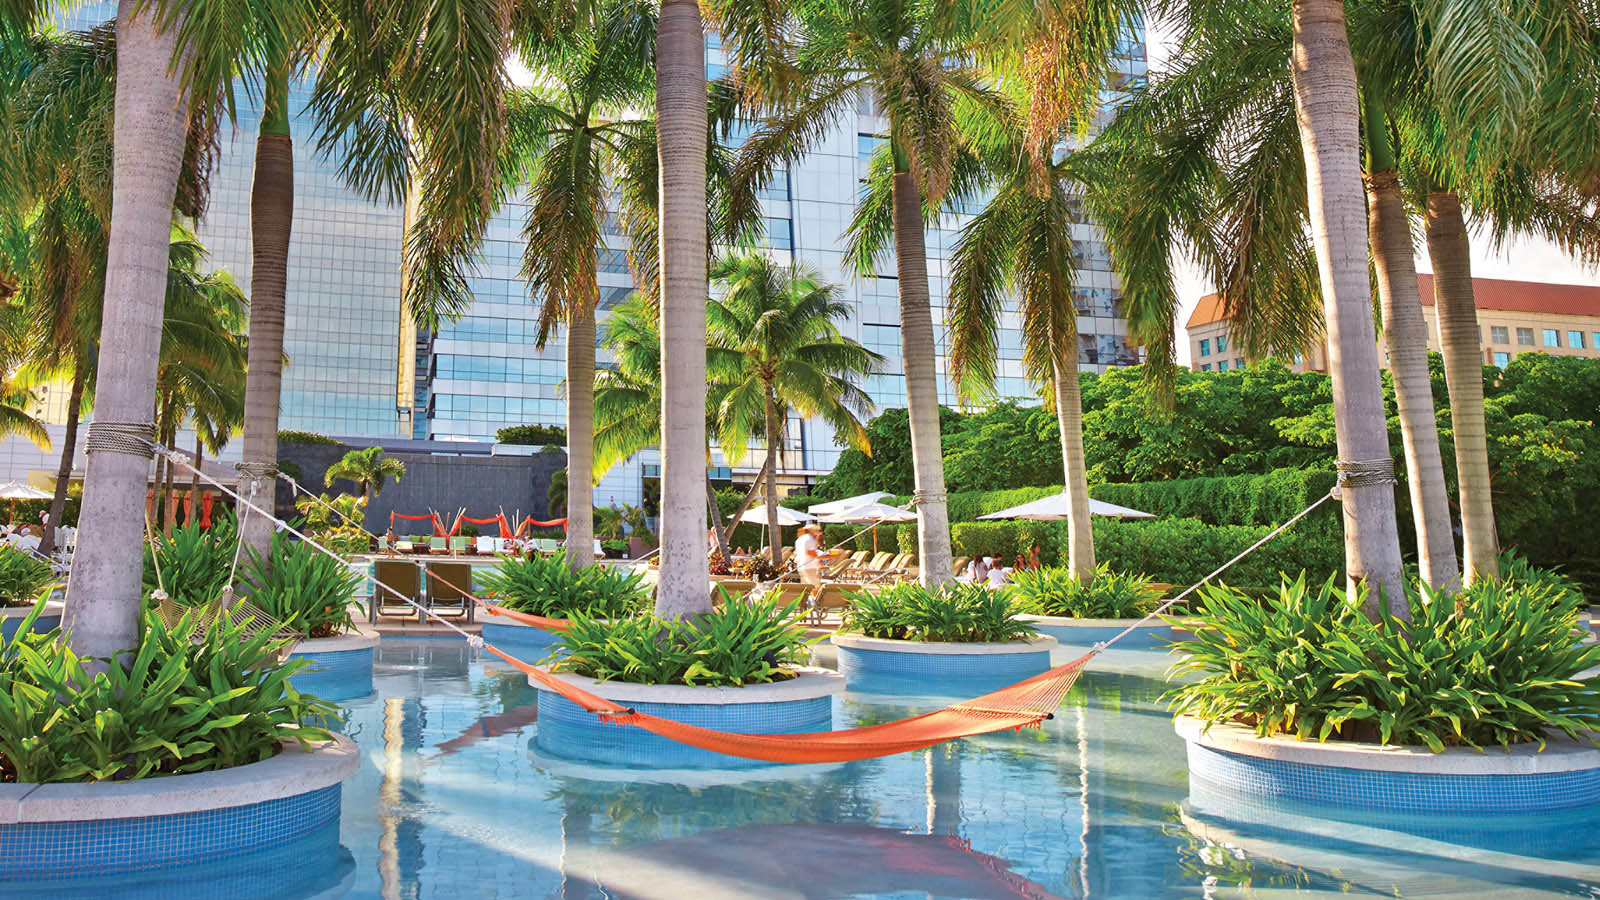 Miami Event Space | Meeting Rooms & Weddings Venues | Four Seasons Hotel